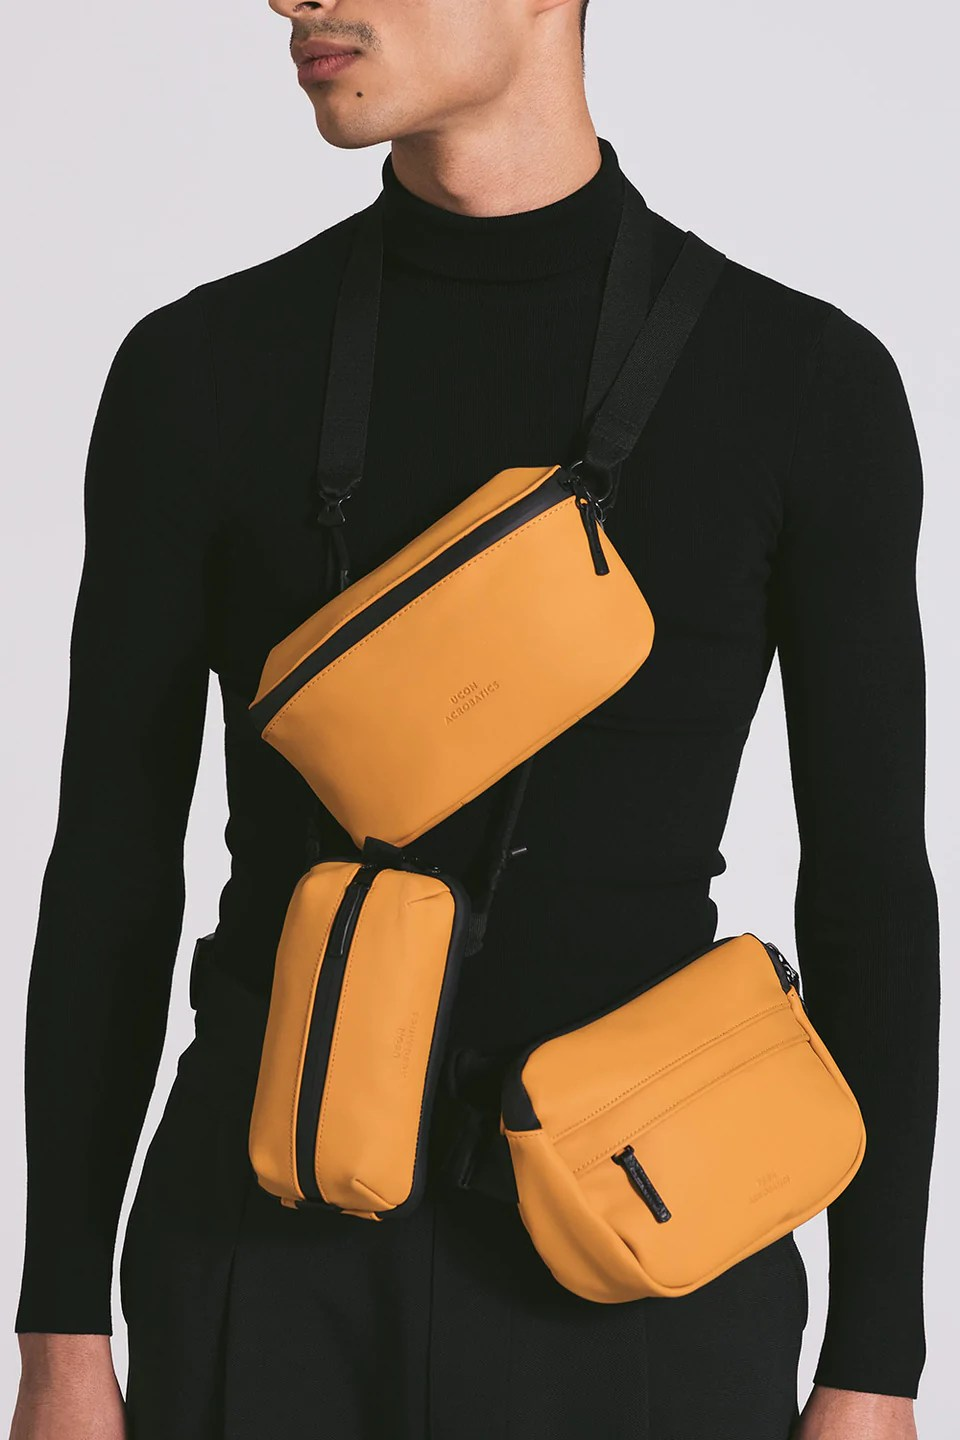 Hipster Frauen Mode Ucon Acrobatics Minimalistic Contemporary Backpacks From